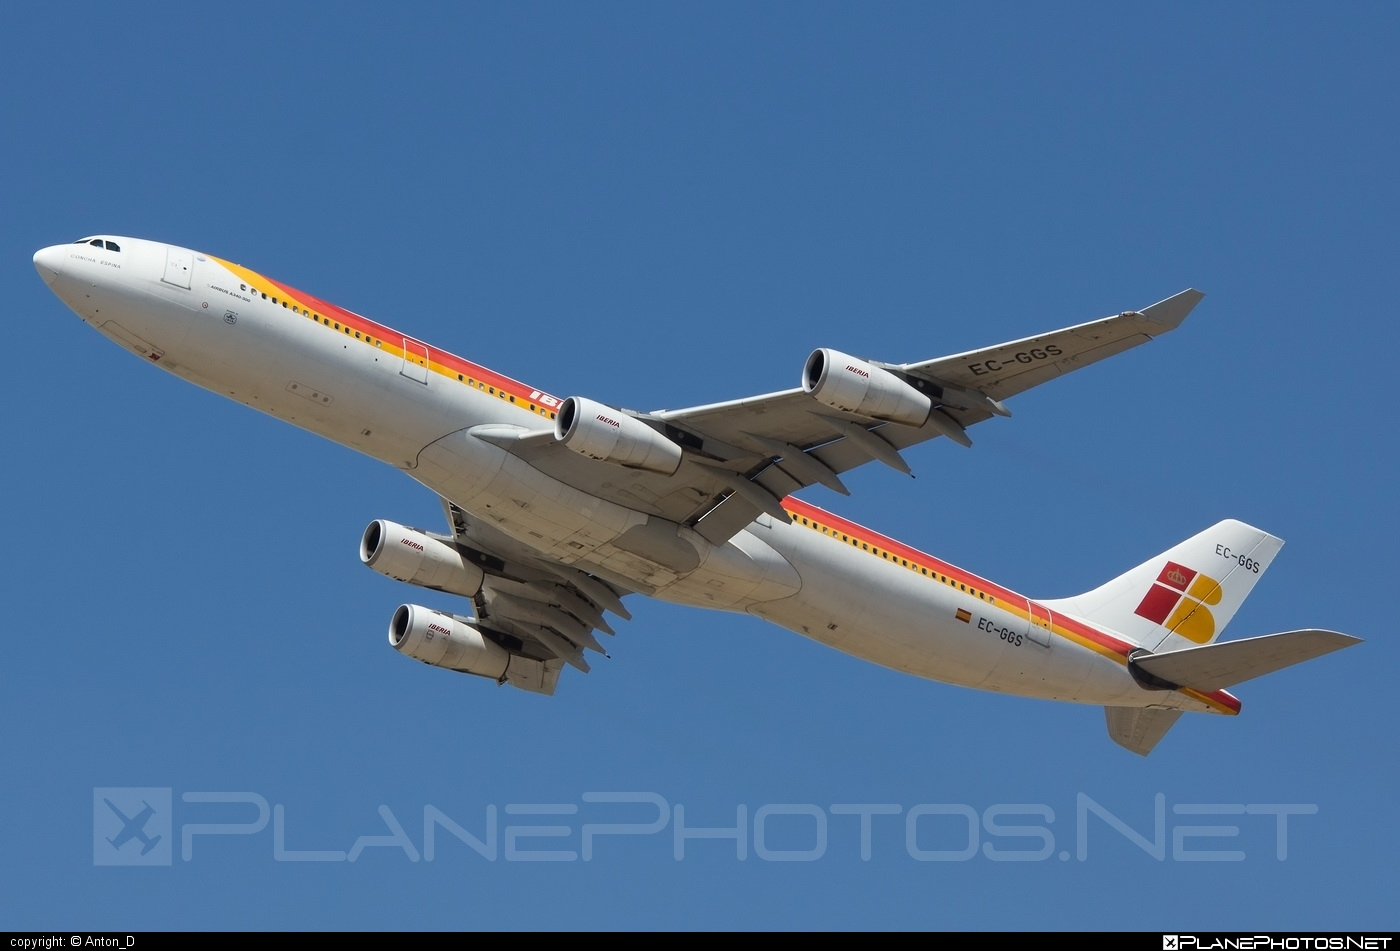 Airbus A340-313 - EC-GGS operated by Iberia #a340 #a340family #airbus #airbus340 #iberia